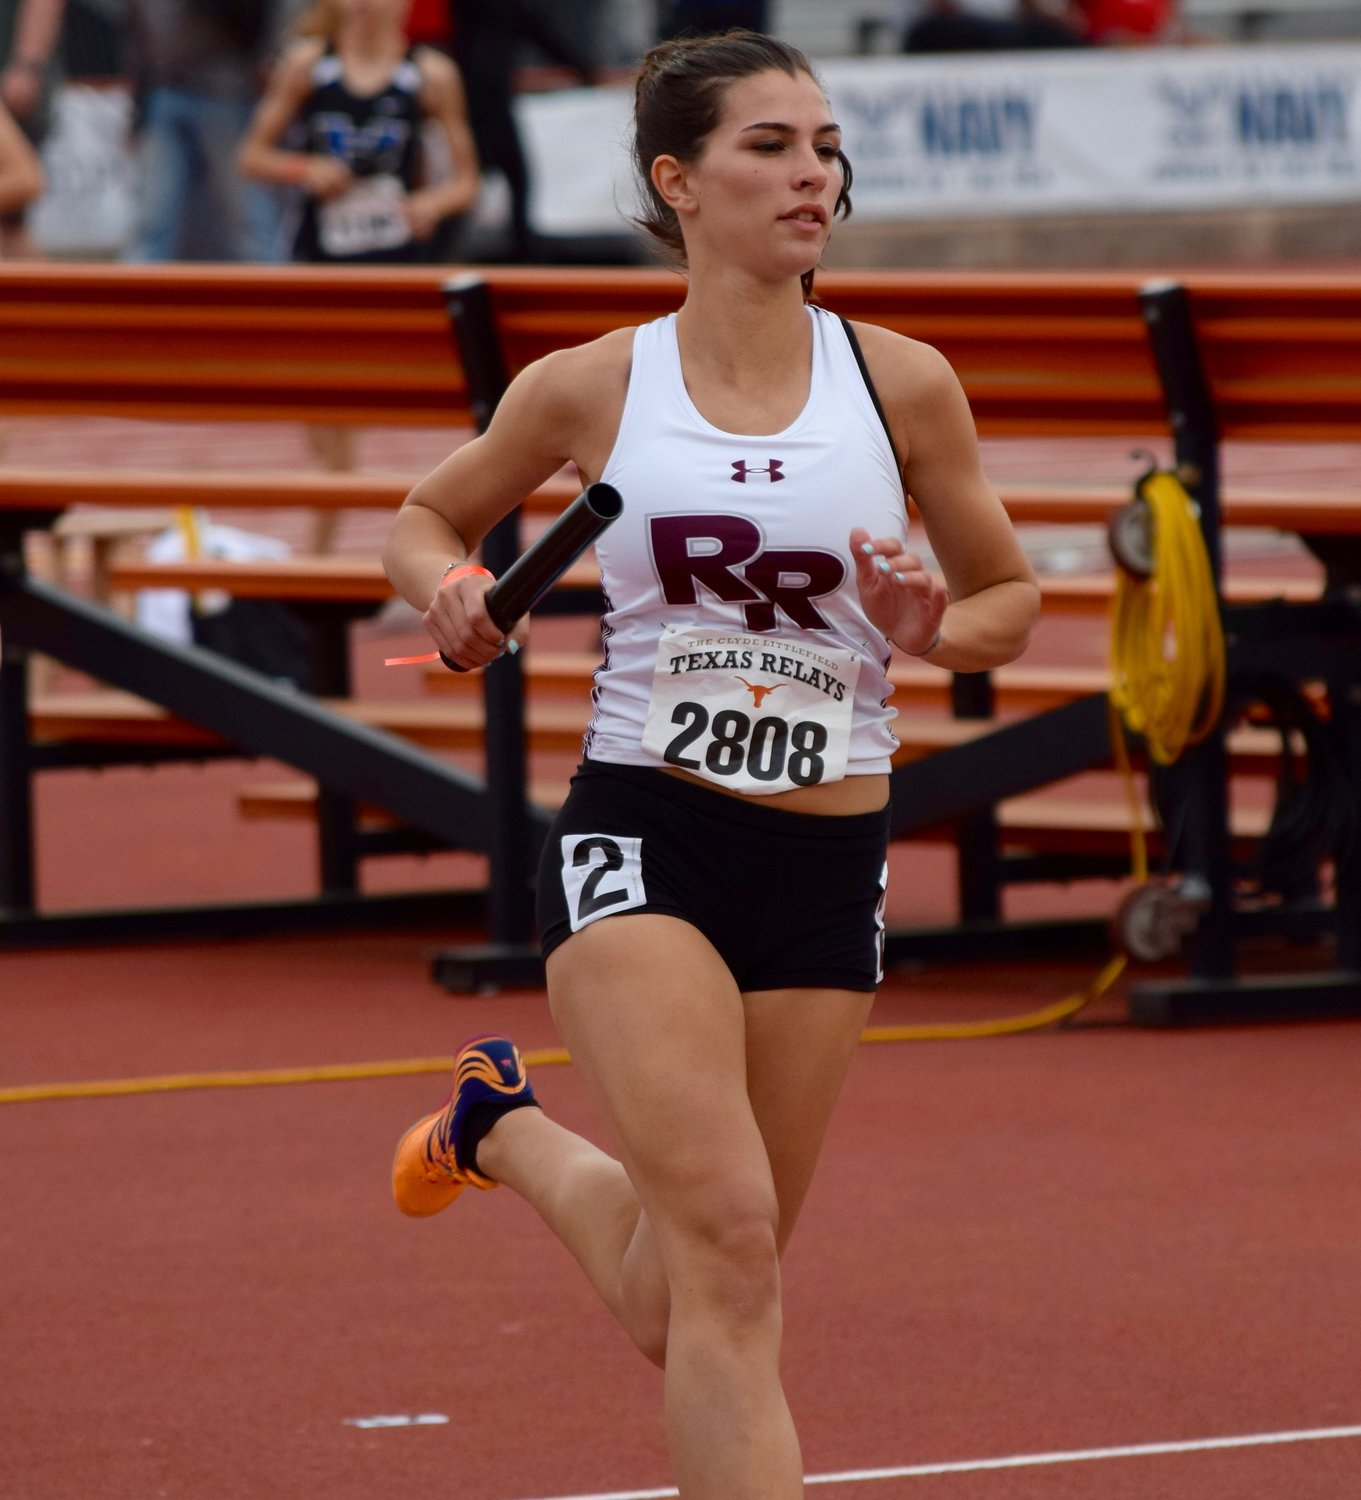 Riley Beard and the Round Rock girls' 4x800-meter relay team of Lauren Willson, Megan Nevlud and Amirah Creighton set a new school record with a time of 9:36.89, winning the event at the Texas Relays on Saturday.